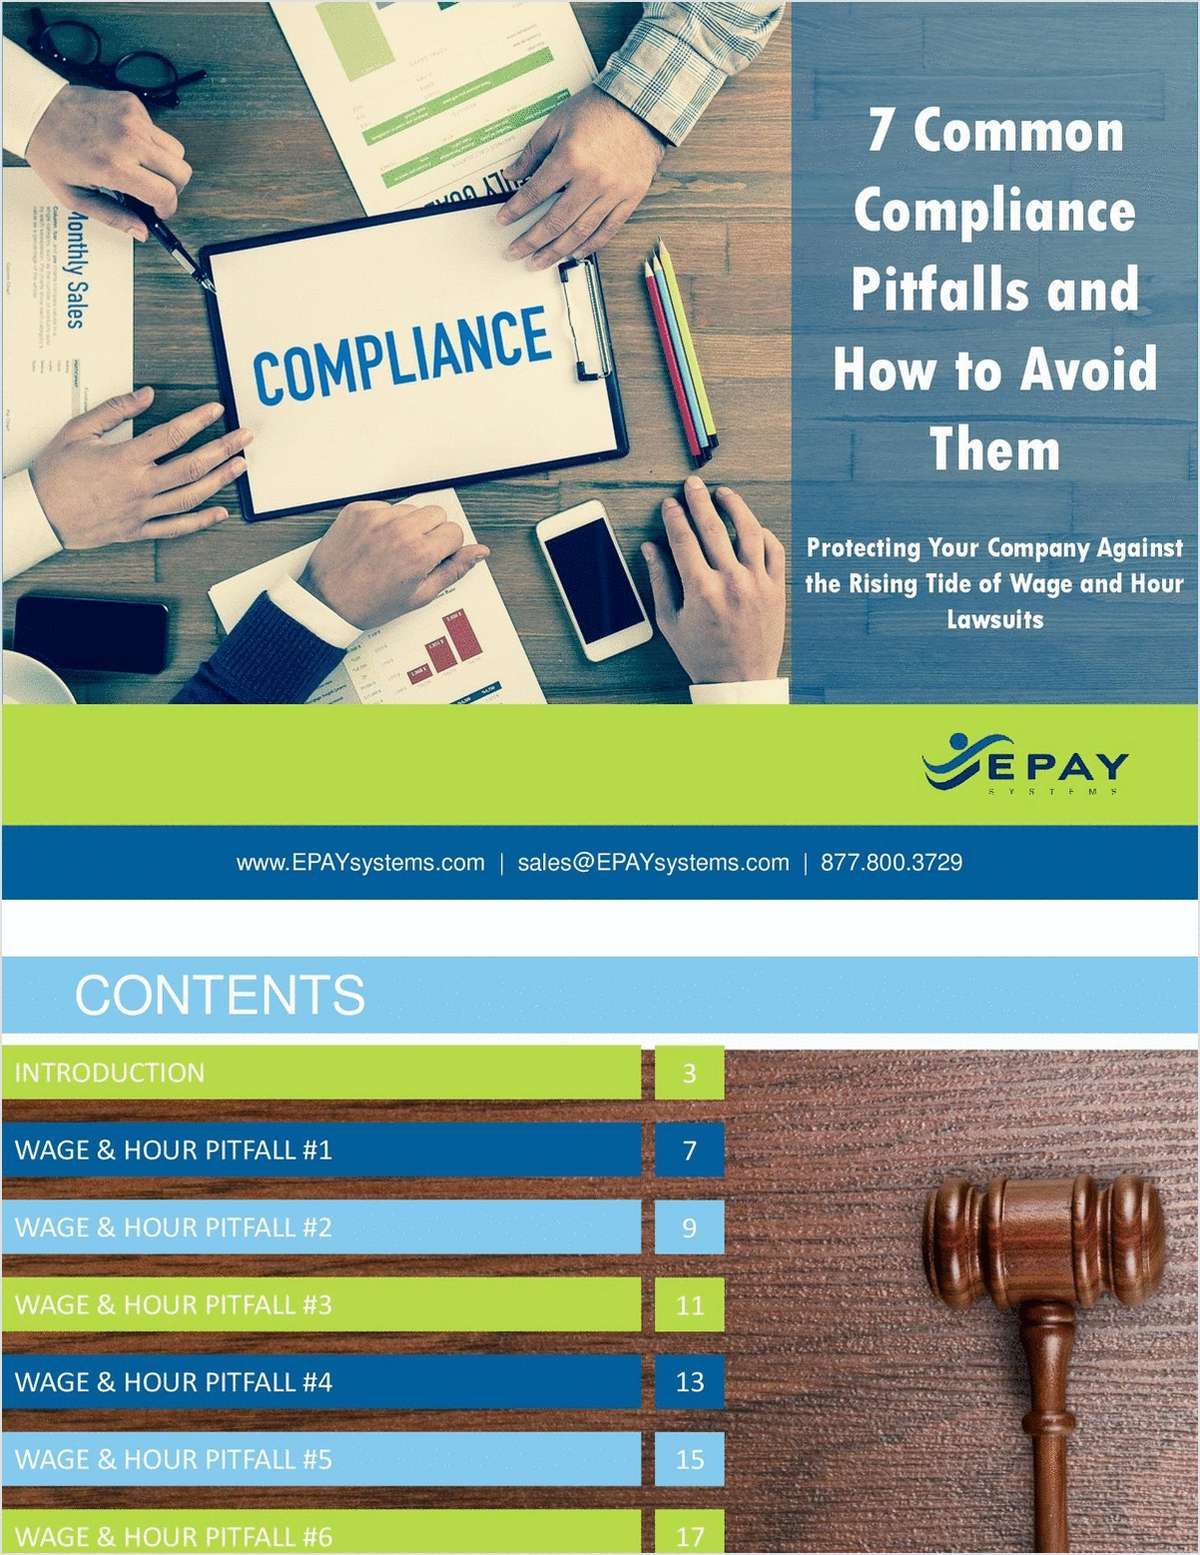 7 Common Compliance Pitfalls and How to Avoid Them